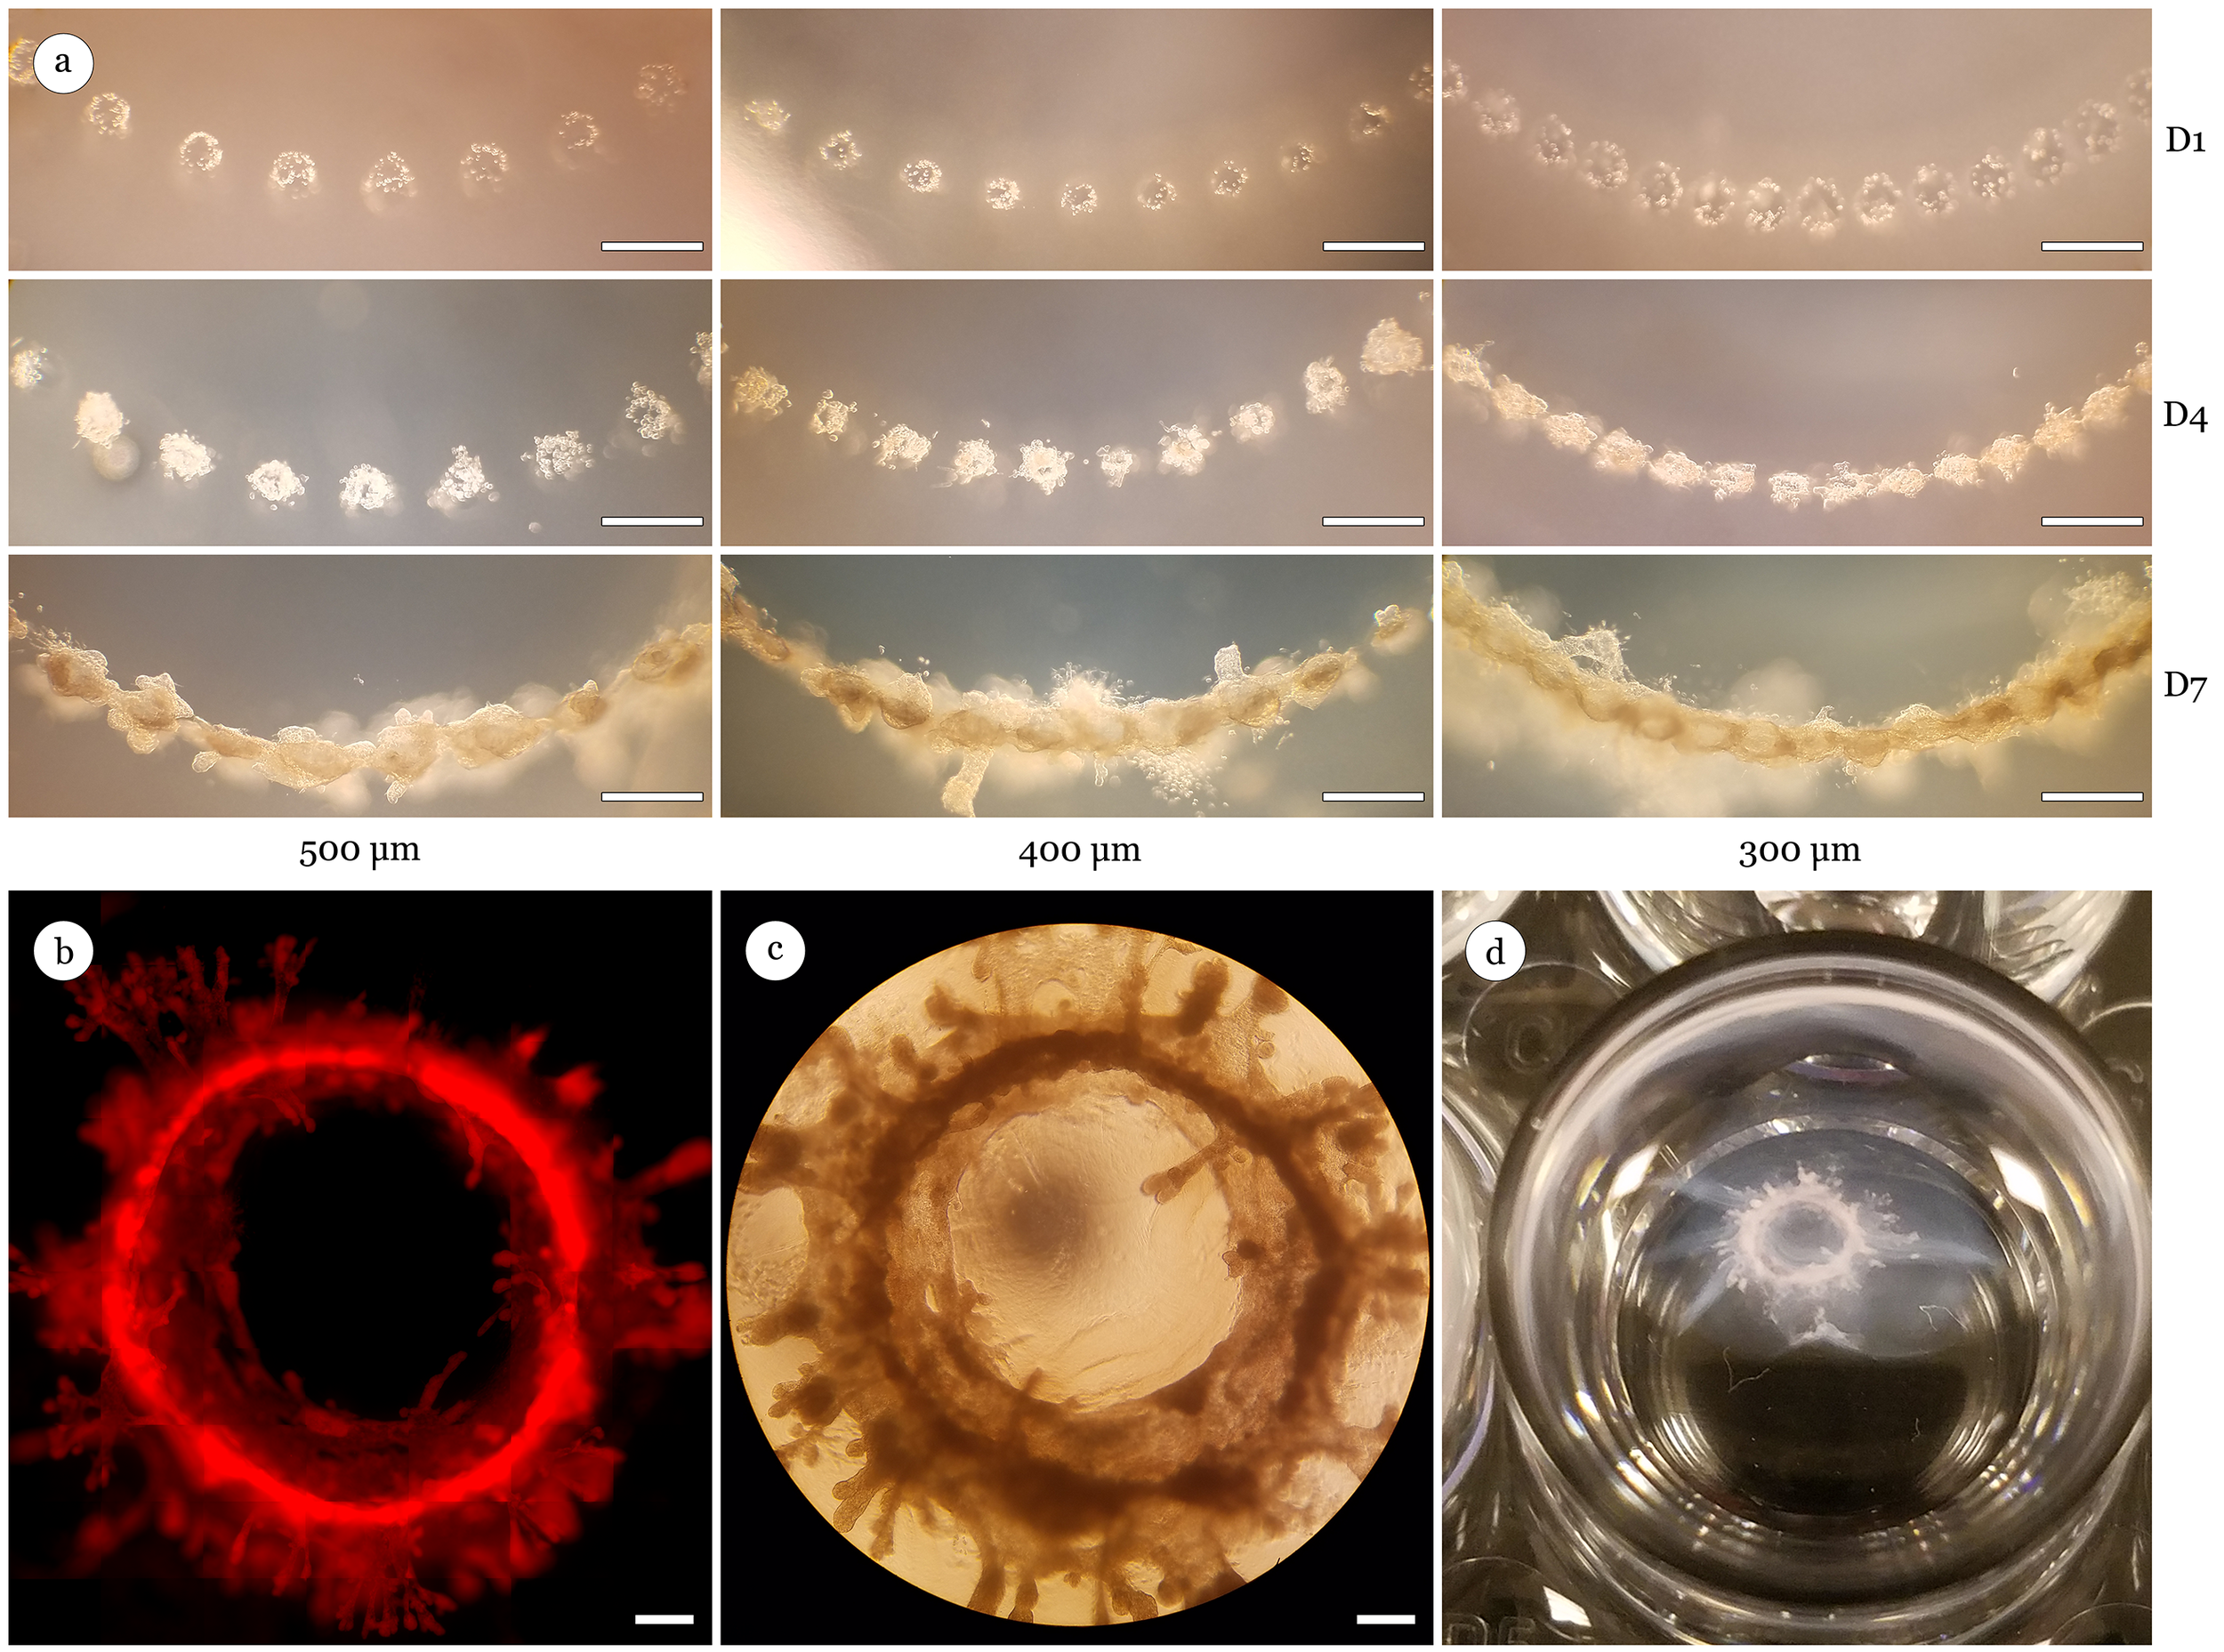 Directed printing of non-linear organoids. (a) MCF-12A cells (40 cells per deposit) printed in a radial pattern with print spacings of (a) 500μm, 400μm, or 300μm. Images of cell clusters illustrate the ability to direct large scale mammary structures within 7 days using additional geometric configurations. (b) Fluorescent image of bioprinted, RFP MCF-12A cell clusters 14 days post-print demonstrating fusion of individual organoids into a contiguous circular organoid. (c) Brightfield image of large circular organoid 14 days post-print. (d) Example of a large circular organoid inside 24 well culture plate 24 days post-print measuring ~4mm in diameter. Scale bar 500μm.